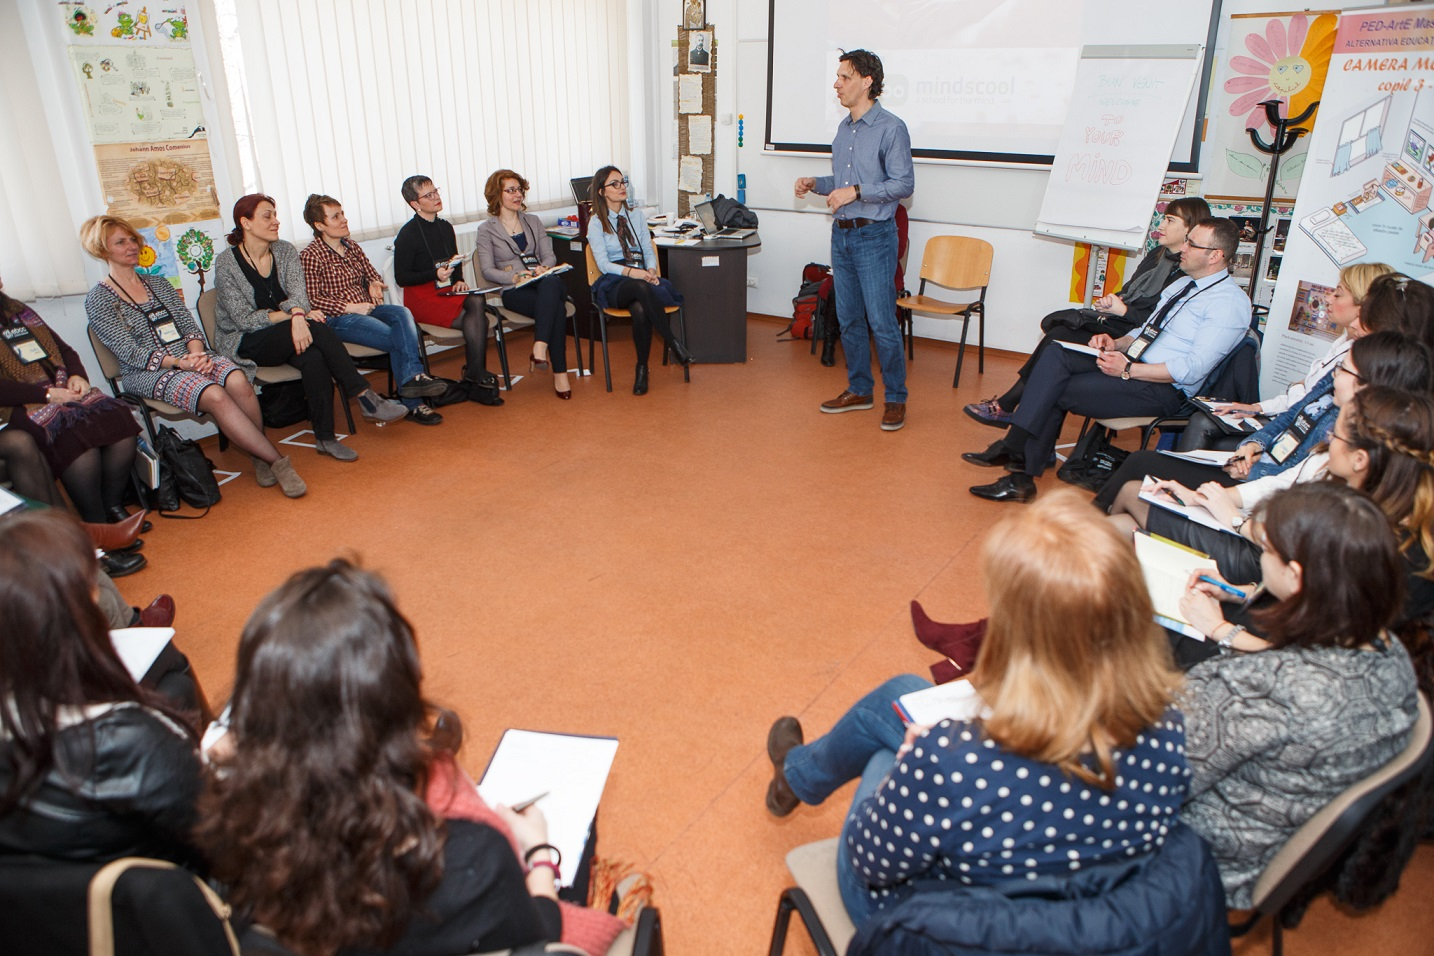 Workshop Sambata 17.02